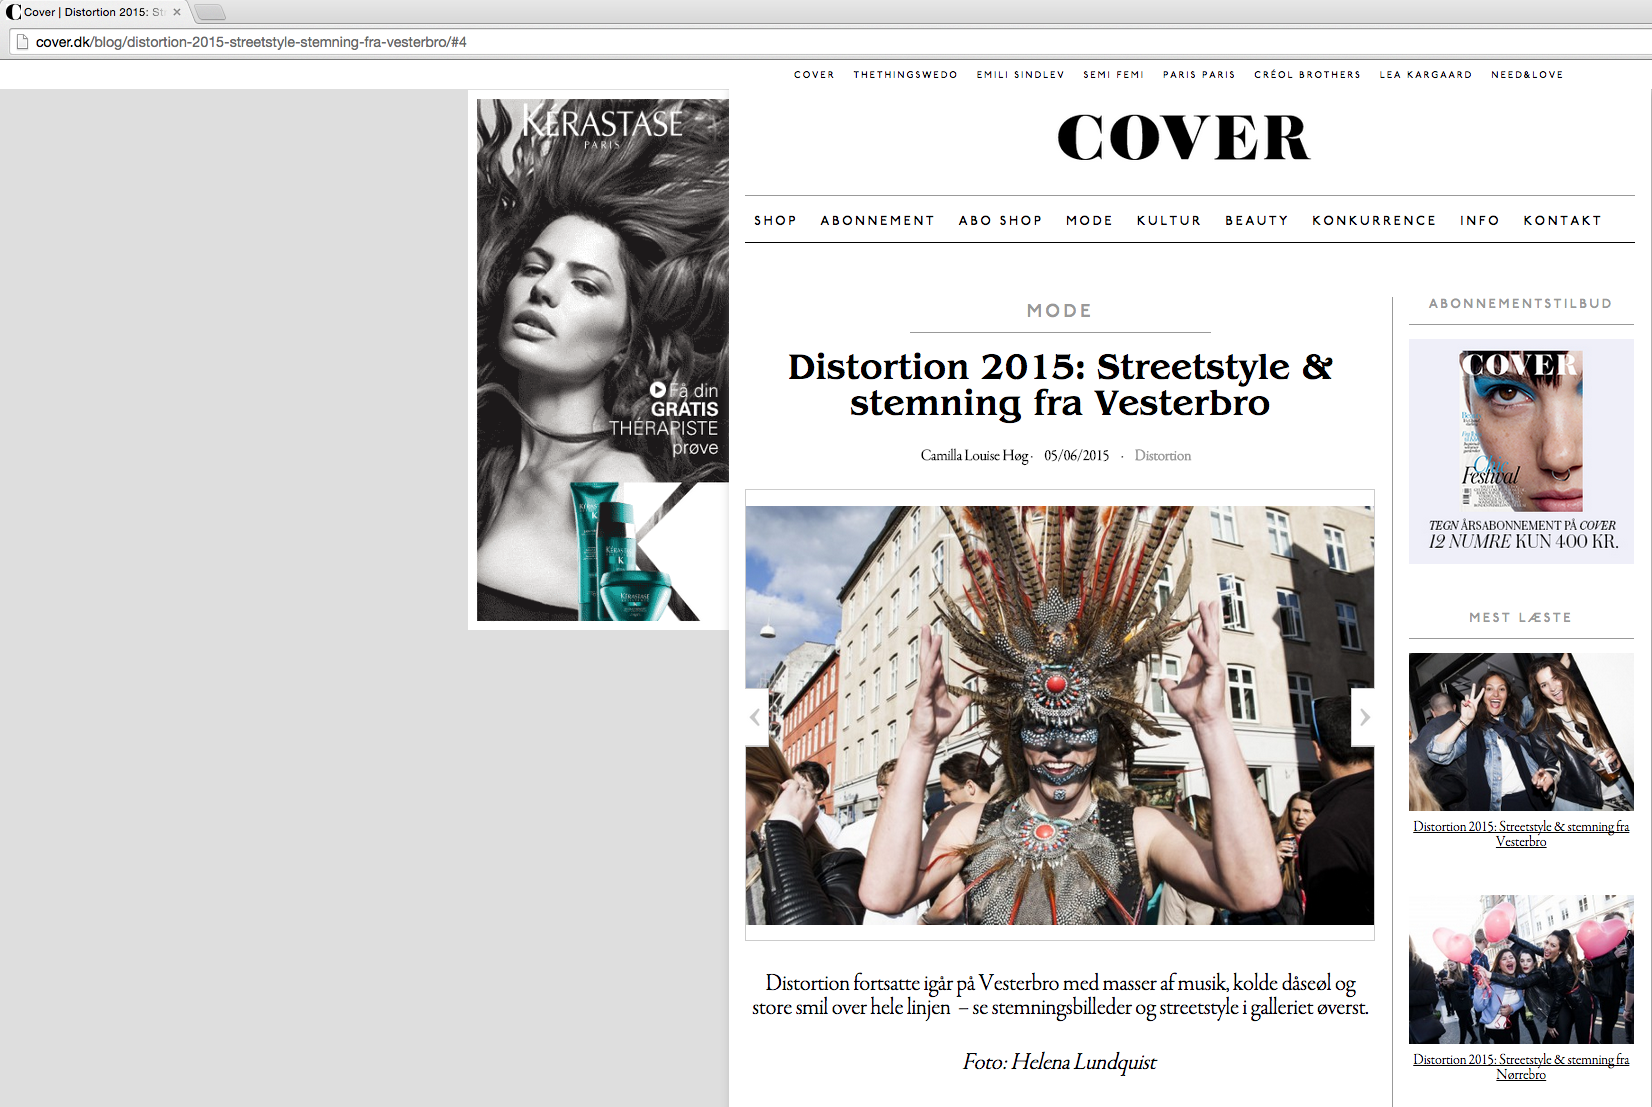 Distortion2015_vesterbro_HelenaLundquist_COVERDK